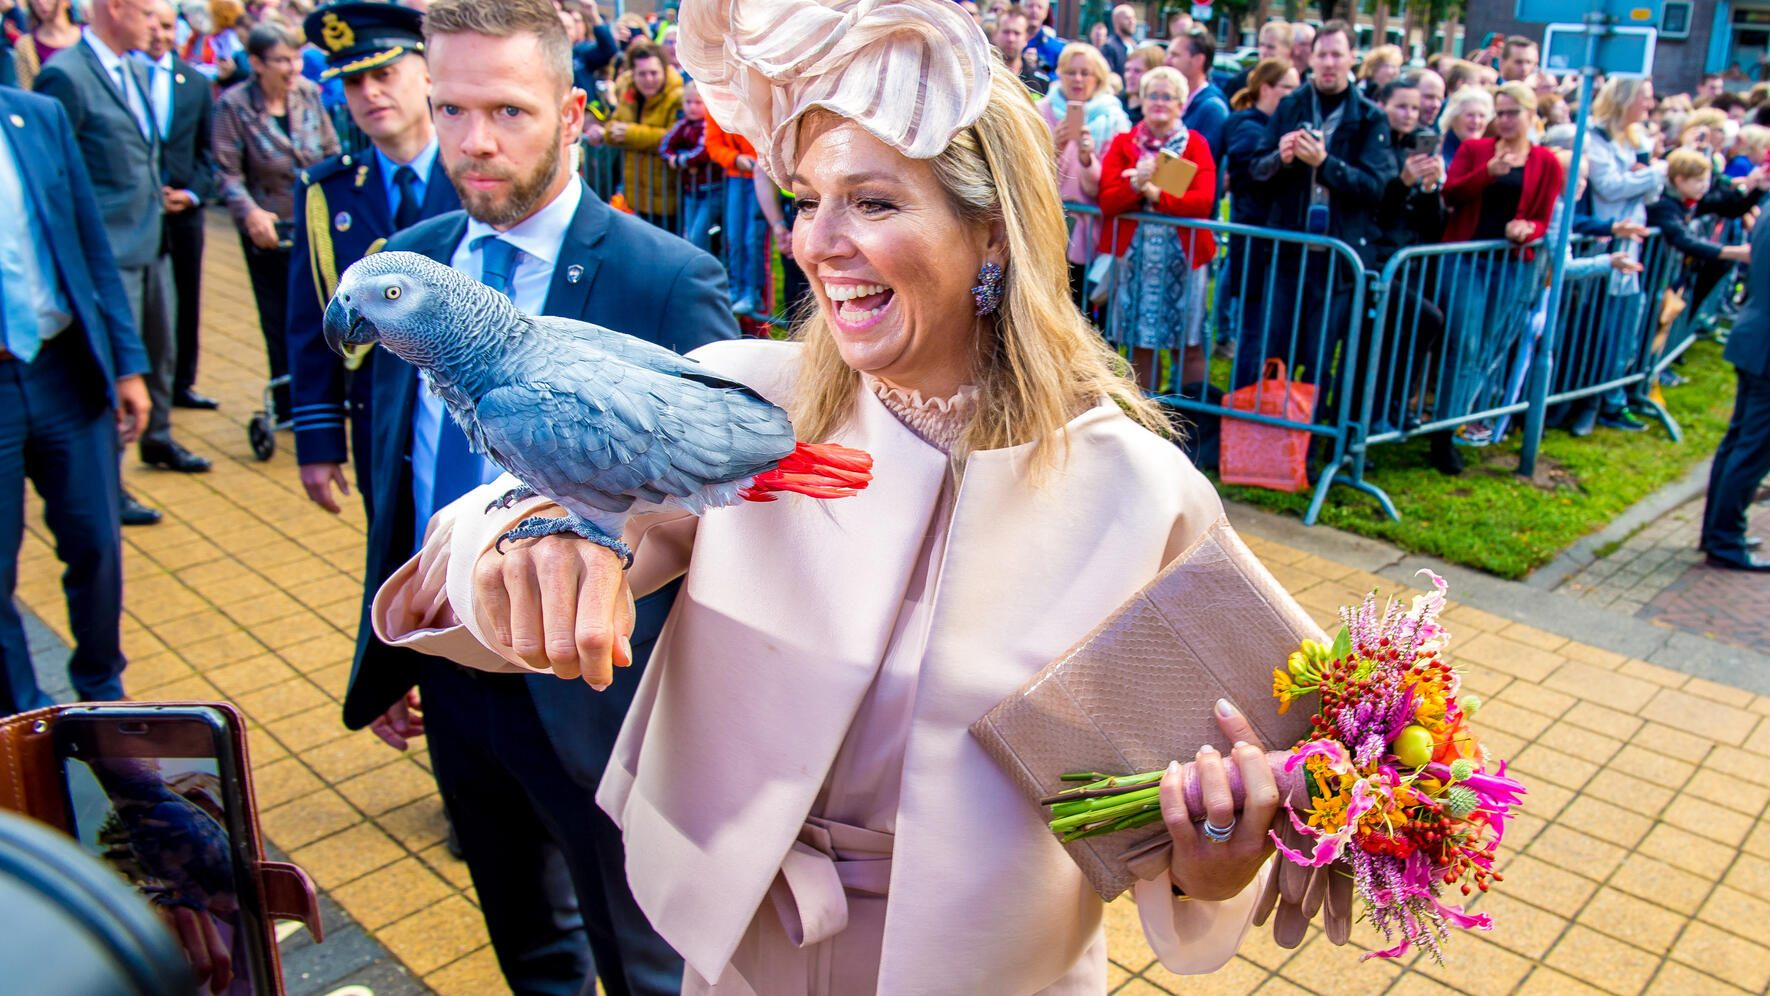 King Willem_Alexander and Queen Maxima during a regional visit to the places Hoogeveen, Westerveld, De Wolden and Meppel in South-West Drenthe. *** Local Caption *** 11122105